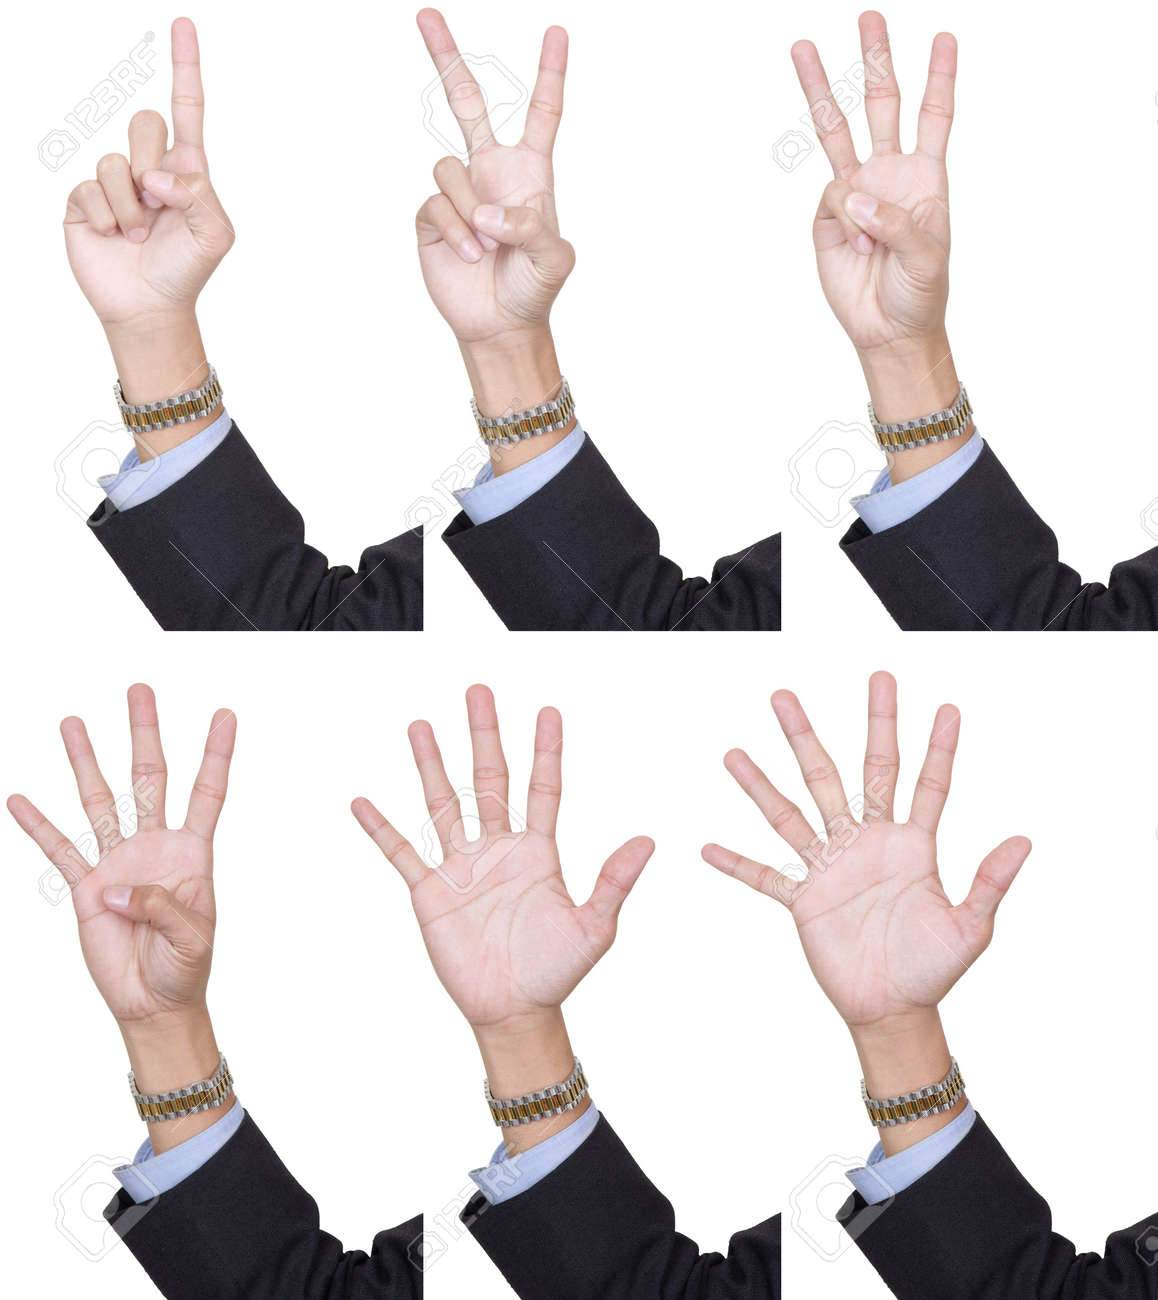 Collection of 6 identical hands in business suit, palm forward, counting fingers one to six. Isolated over white, can be extracted individually. Stock Photo - 6499973